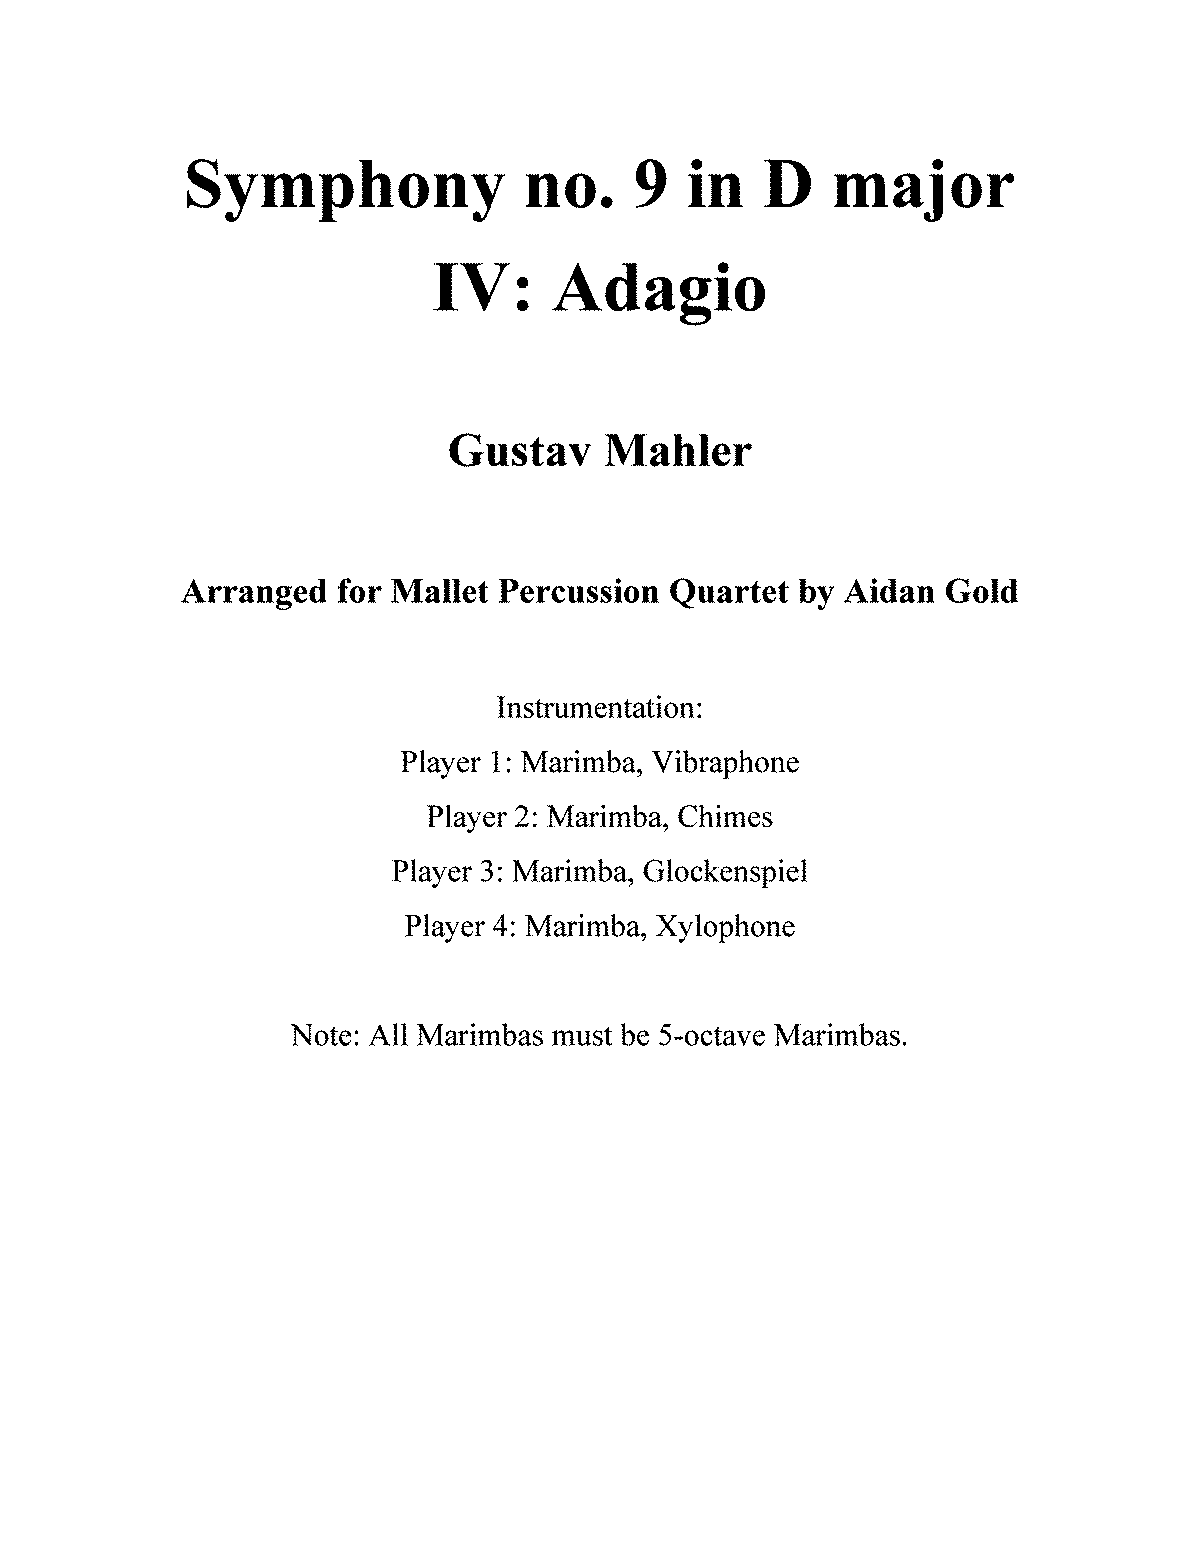 PMLP48640-Mahler 9th Adagio Percussion Arrangement.pdf